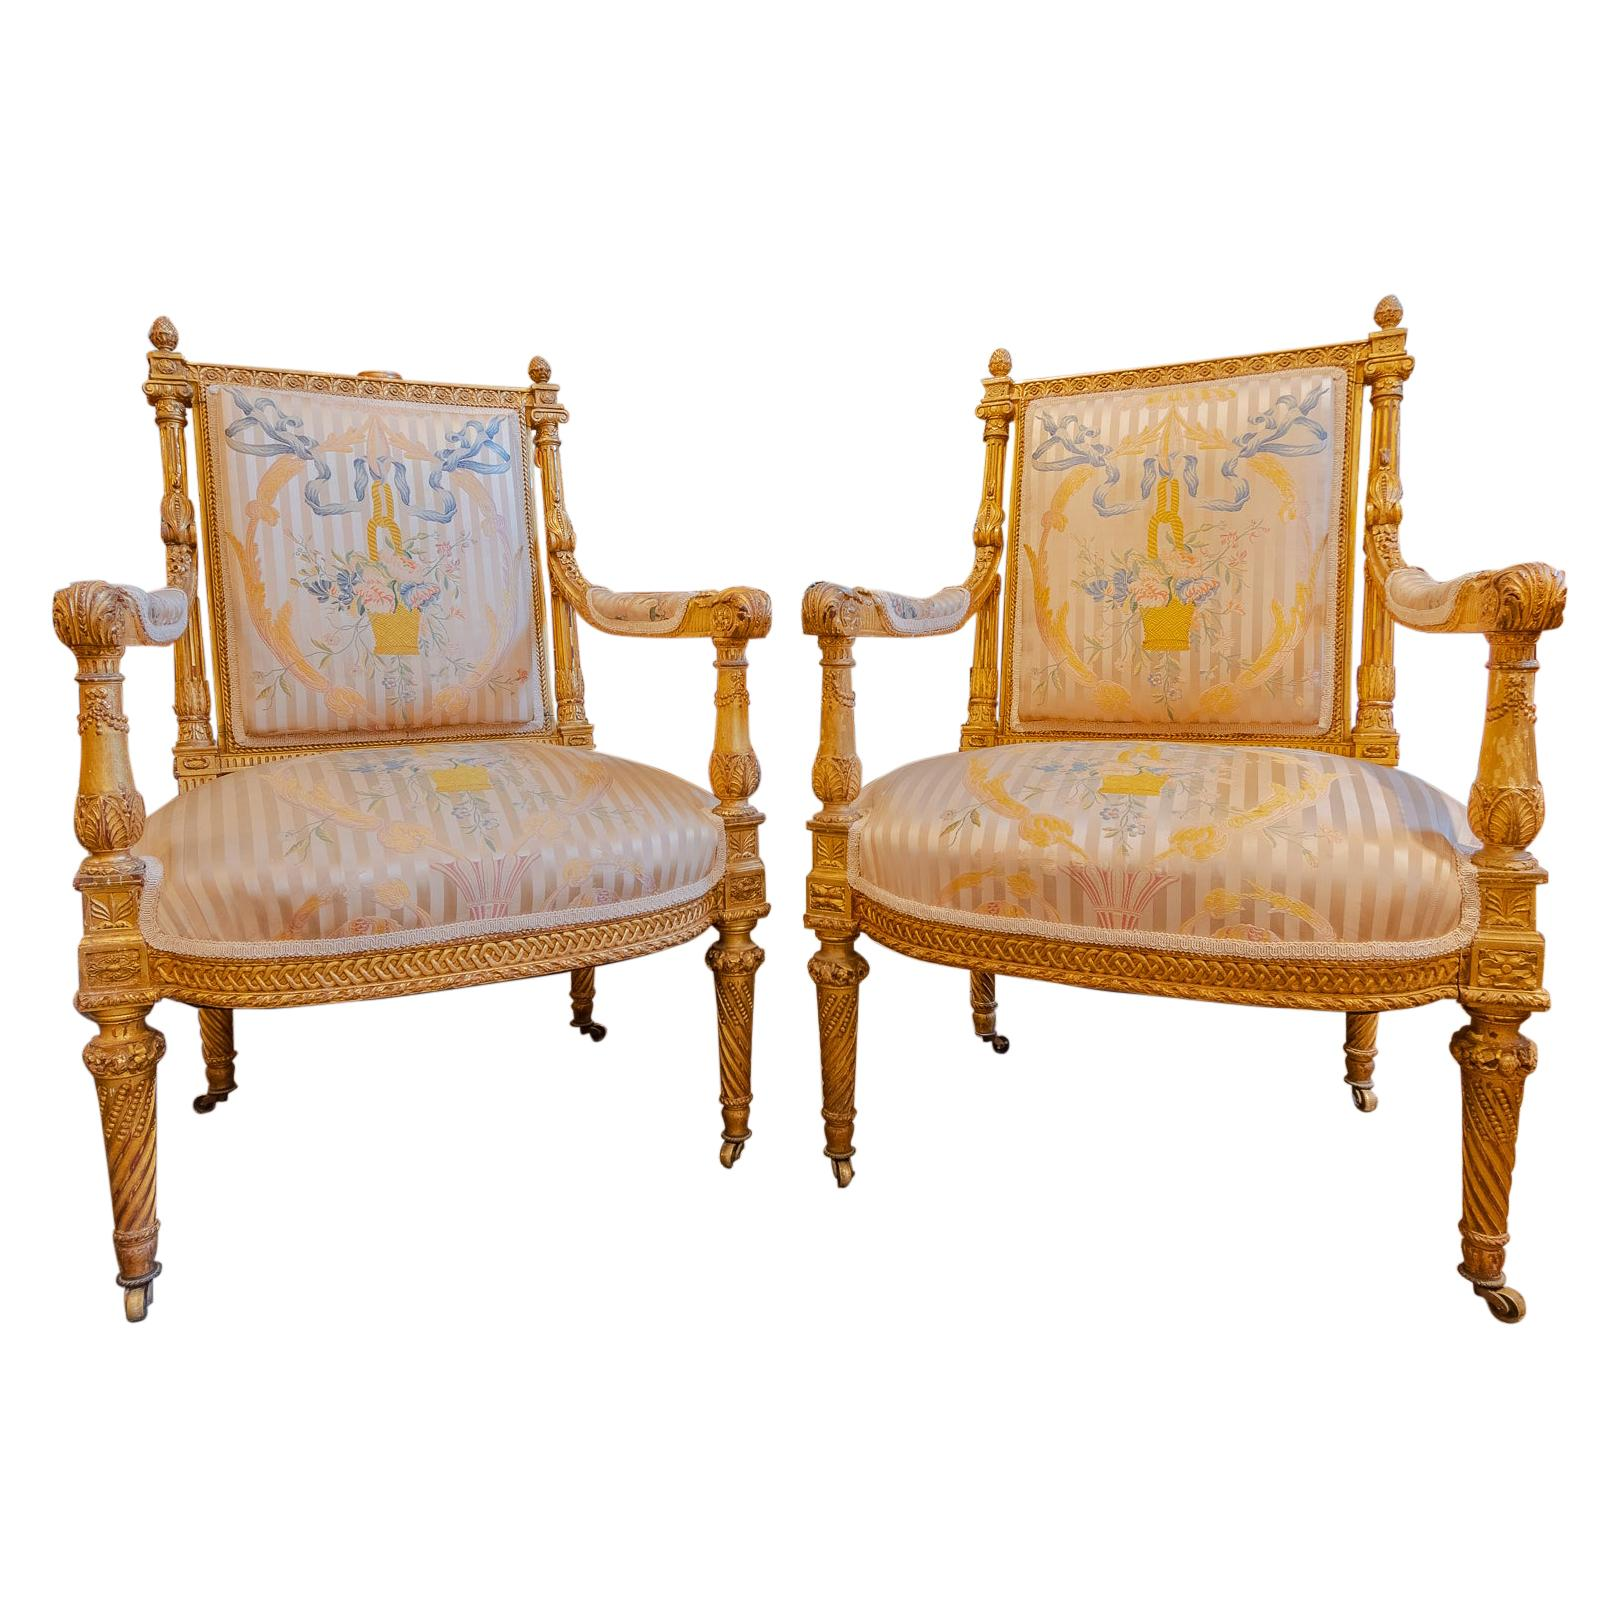 Very Fine Pair of Late 18th Century French Louis XVI Fauteuils, Gilt Carved